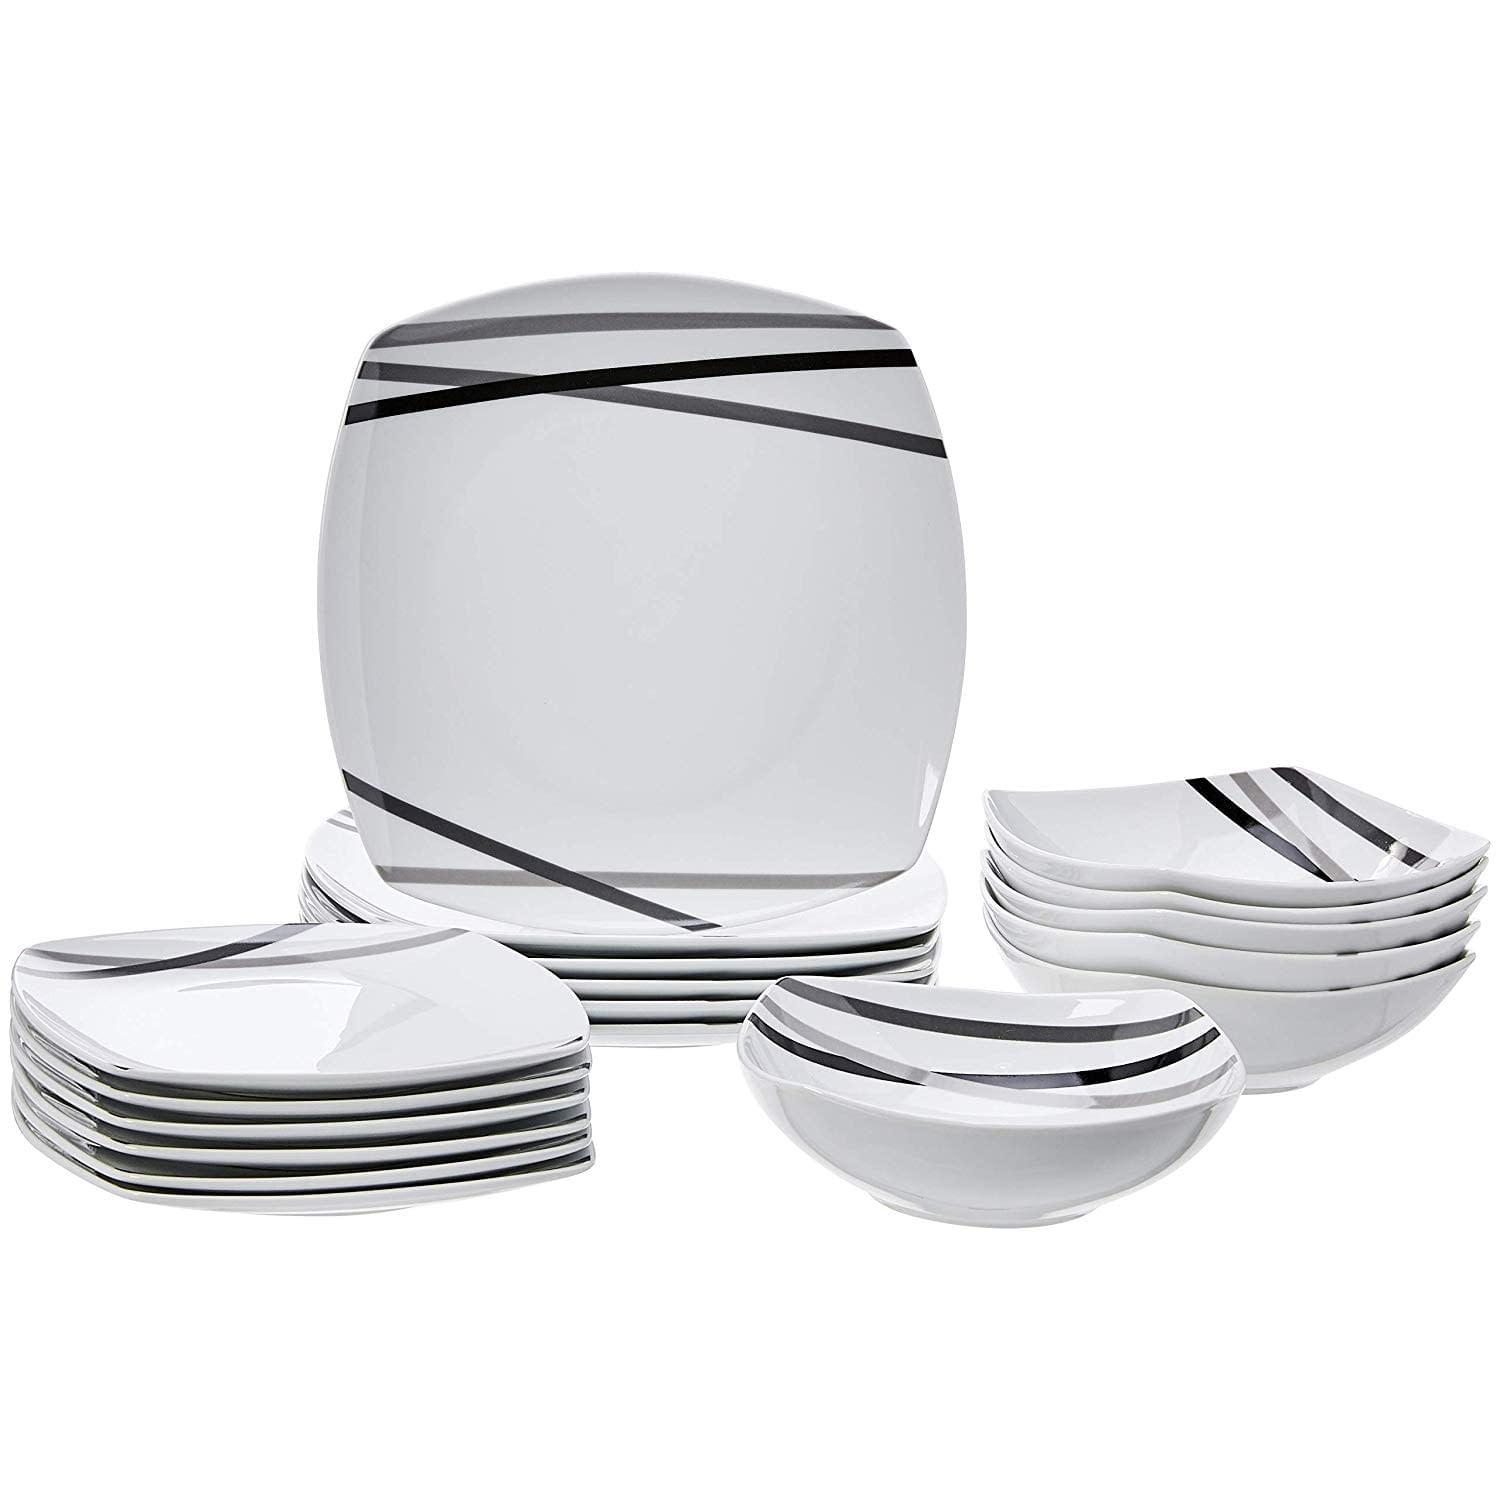 Best AmazonBasics Dinnerware sets that can be used everyday, including dishes and bowls